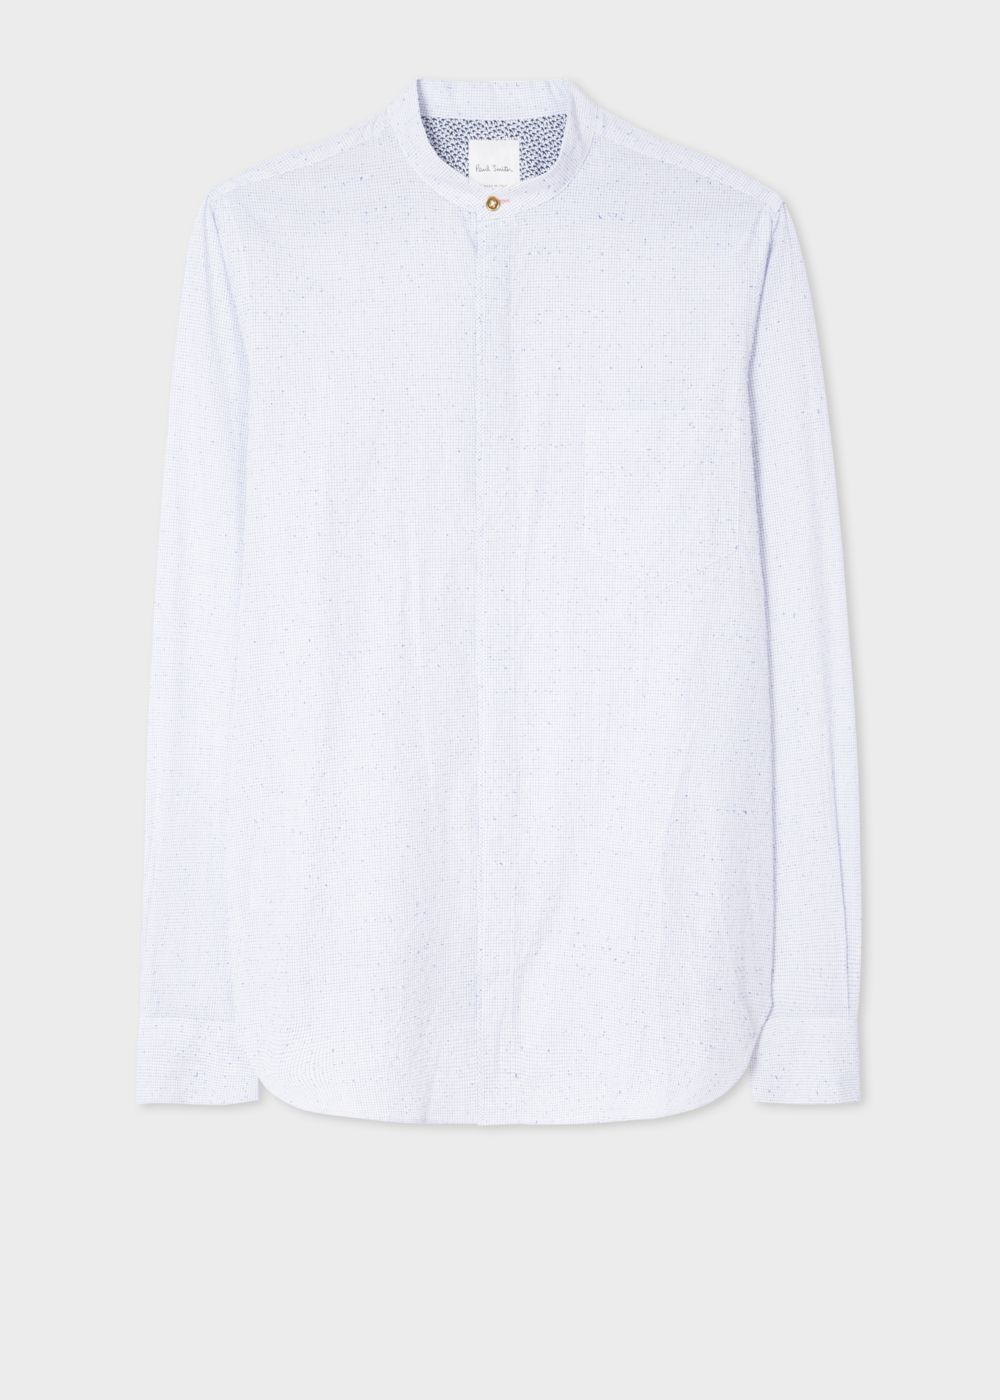 Paul Smith Men's Tailored-Fit White 'Graph Check' Nep-Cotton Band-Collar Shirt